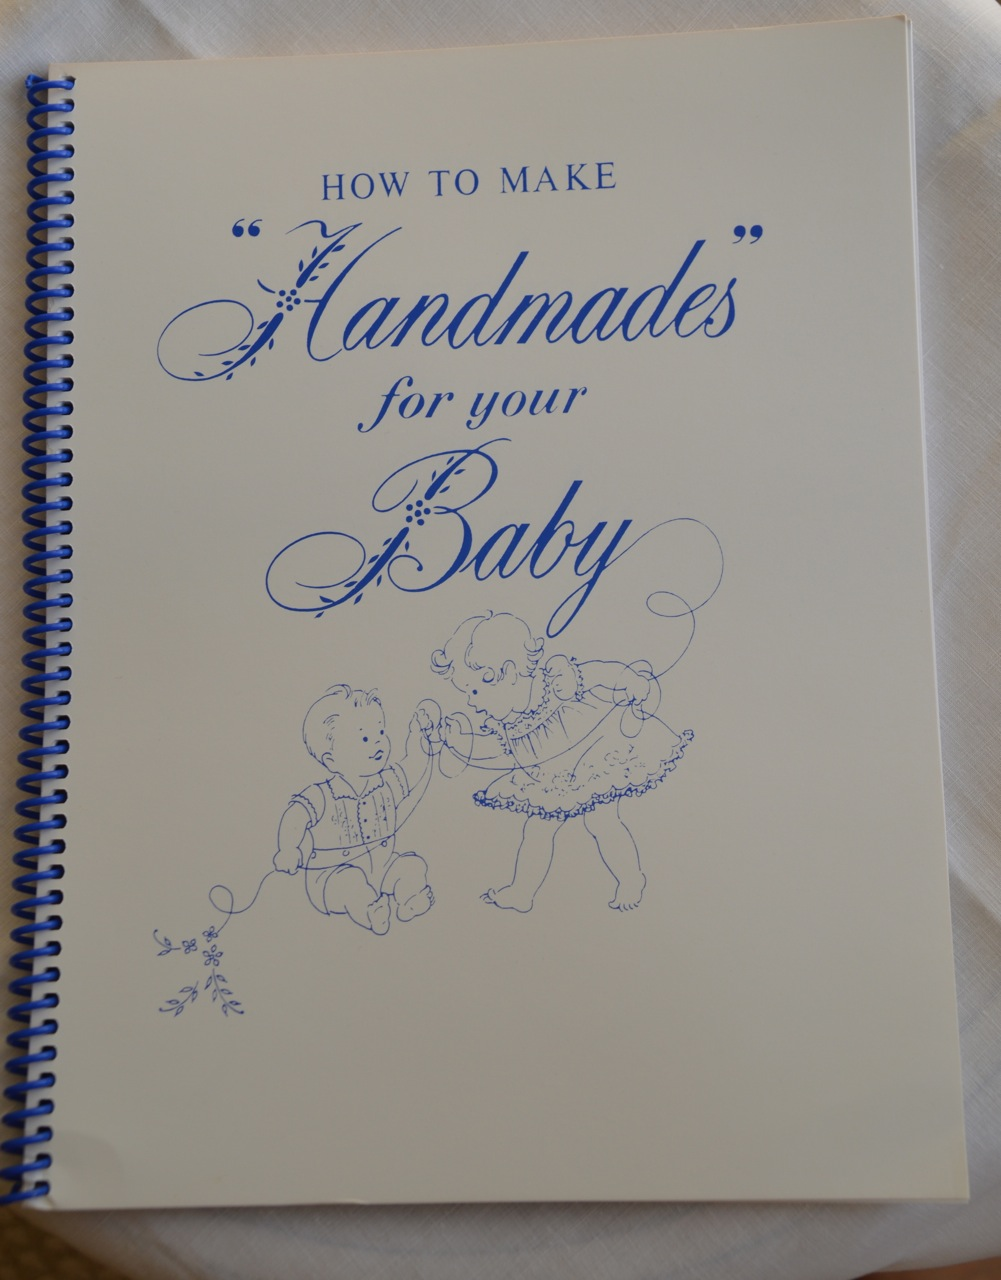 How To Make Handmades for your Baby - Design Book